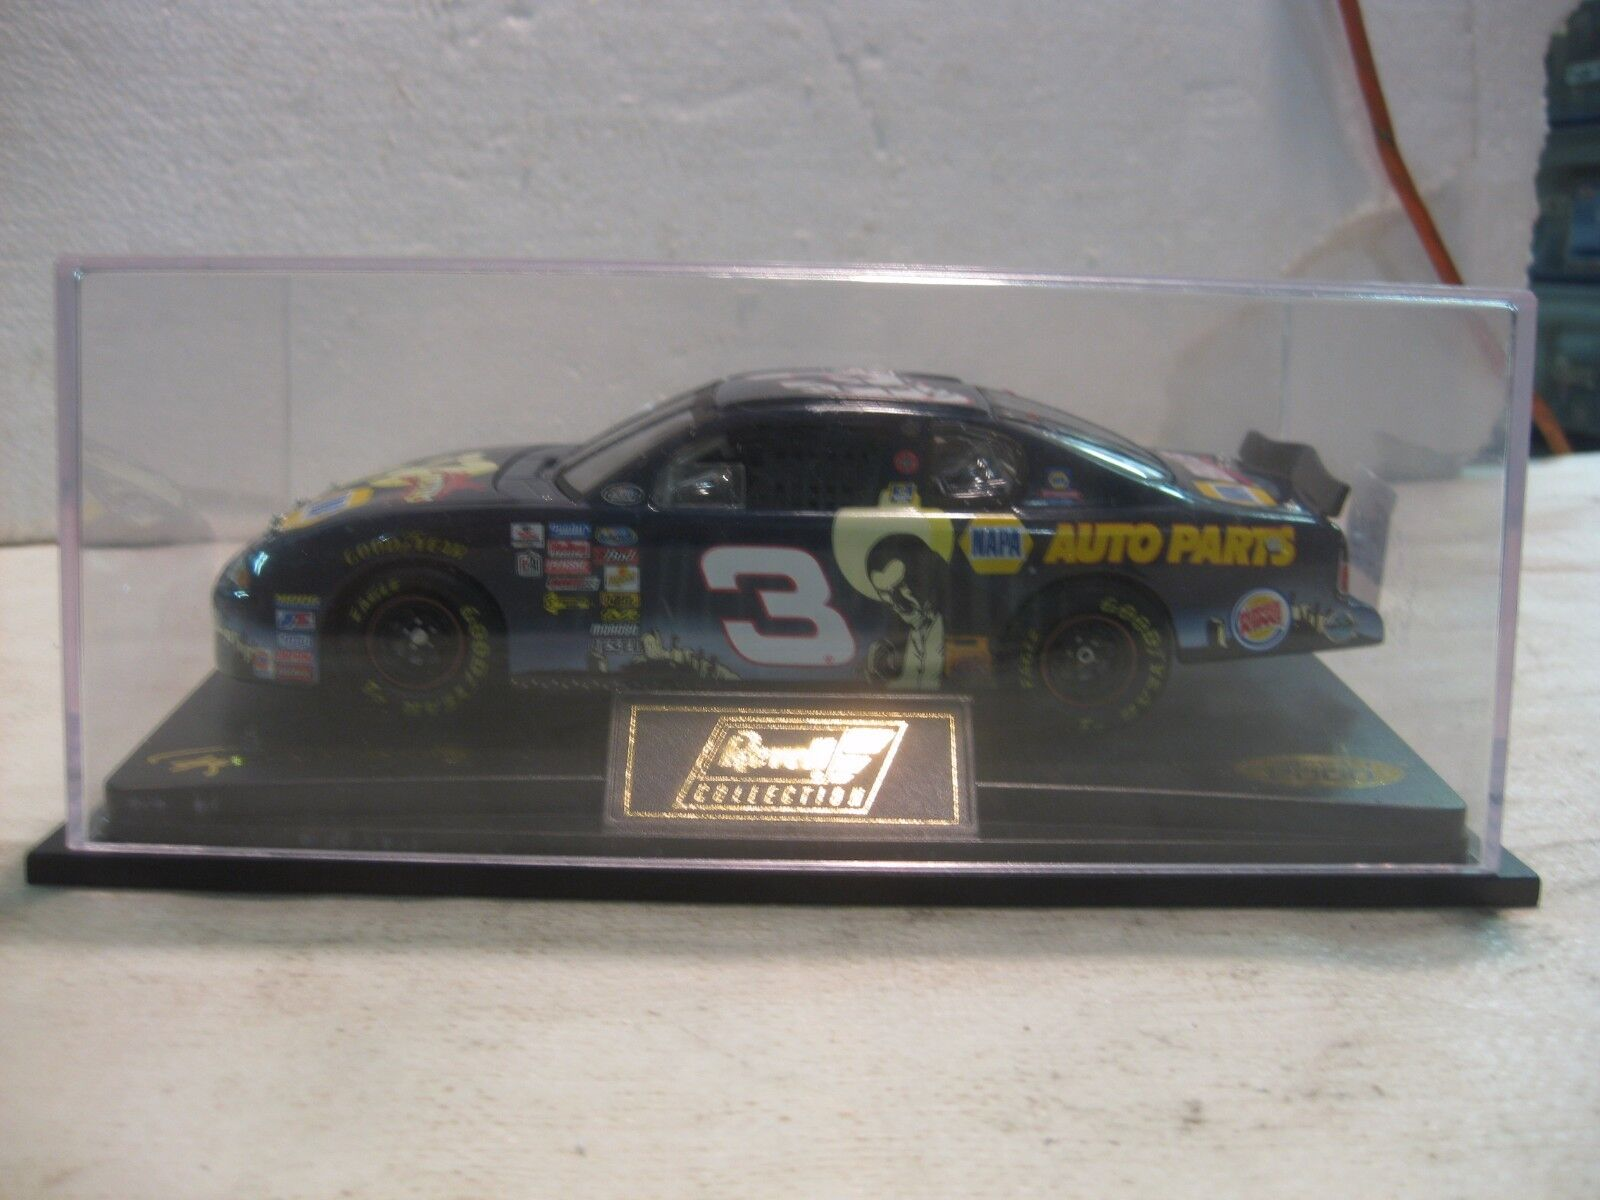 Nascar Ron Hornaday Signed Napa Monte Carlo 1 24 Scale Diecast Revell 2000